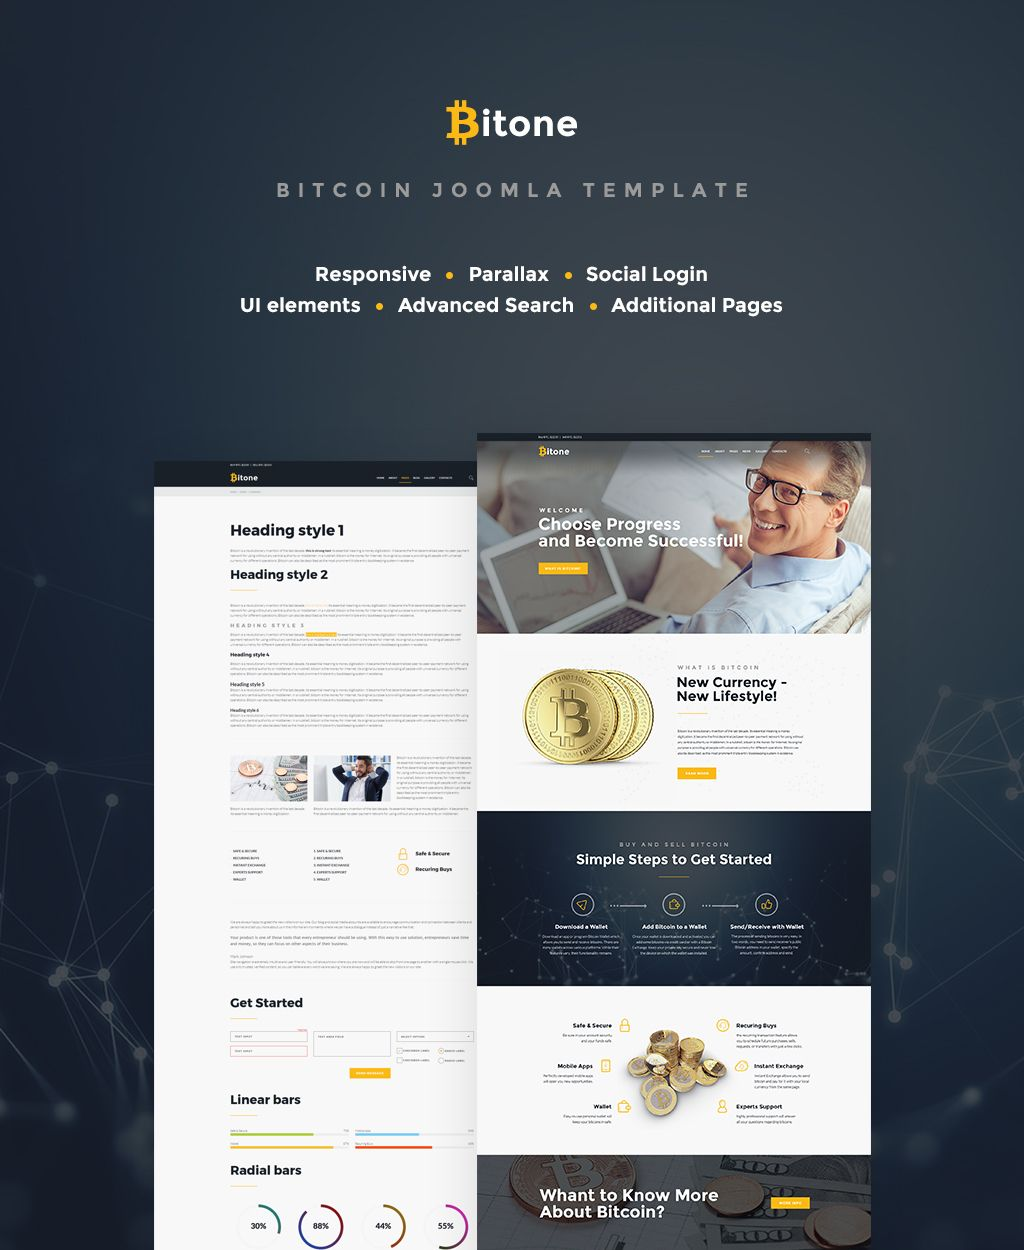 Want to increase the popularity of your cryptocurrency investing website? We have a solution for you! Check out new Bitcoin Cryptocurrency Website Template! #bitcoininvestingwebsite #bitcoinwebsitedesign #joomlatemplatecryptocurrency #cryptocurrencywebsitetemplate https://www.templatemonster.com/joomla-templates/bitone-bitcoin-cryptocurrency-joomla-template-65414.html/